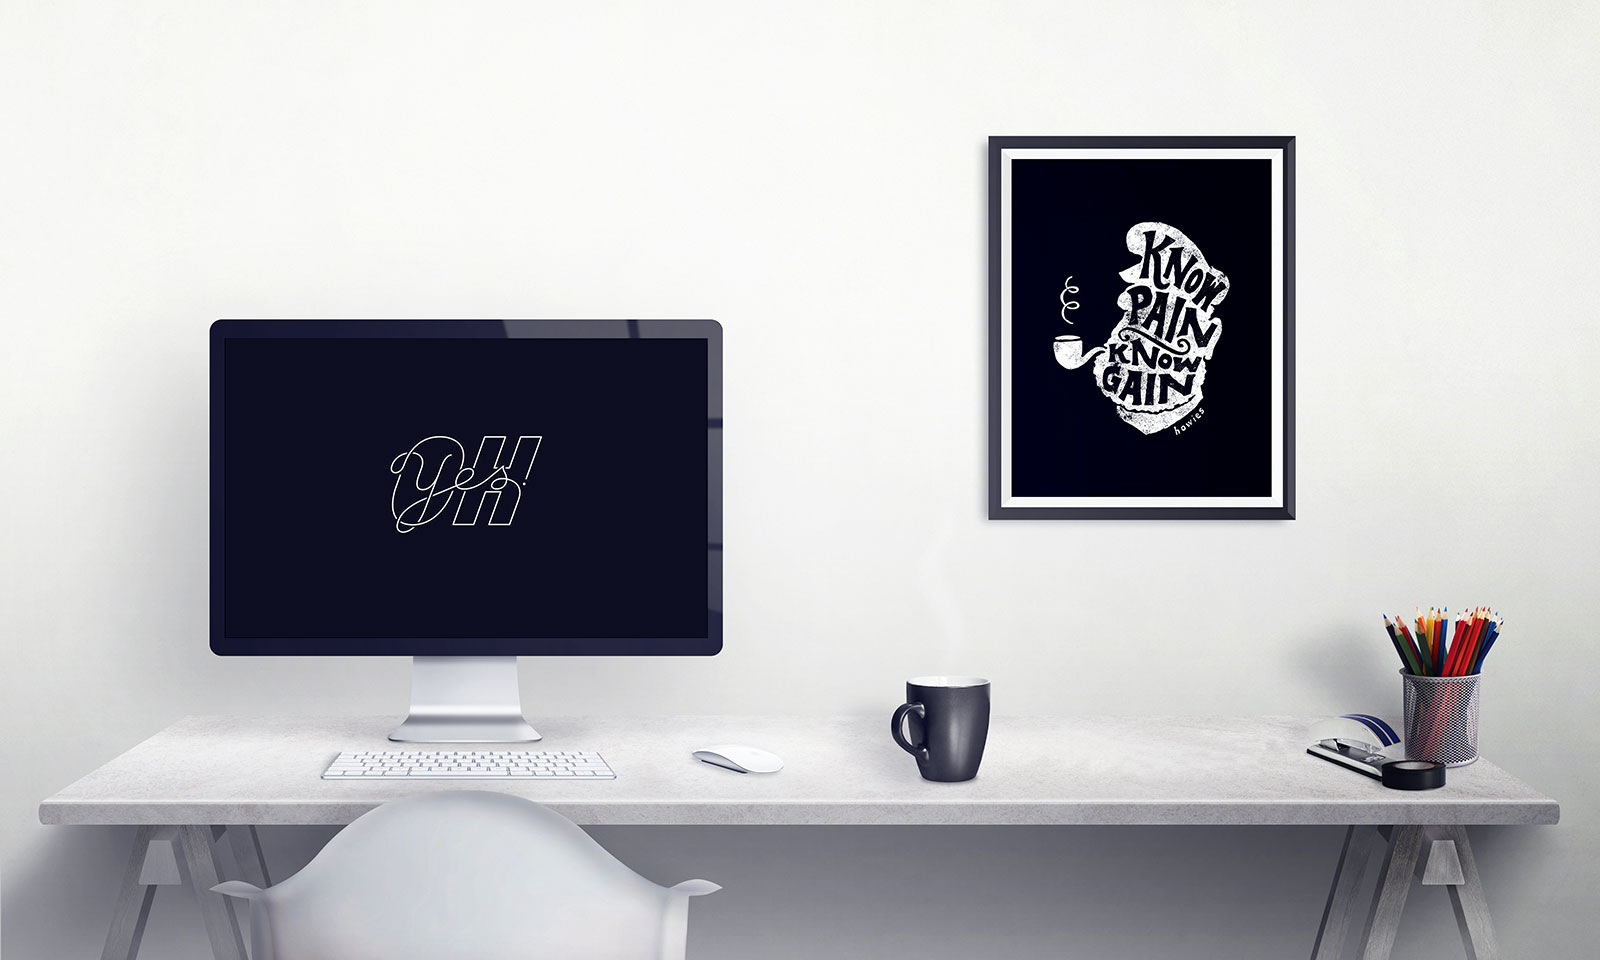 Free-iMac-&-Photo-Frame-Mockup-PSD